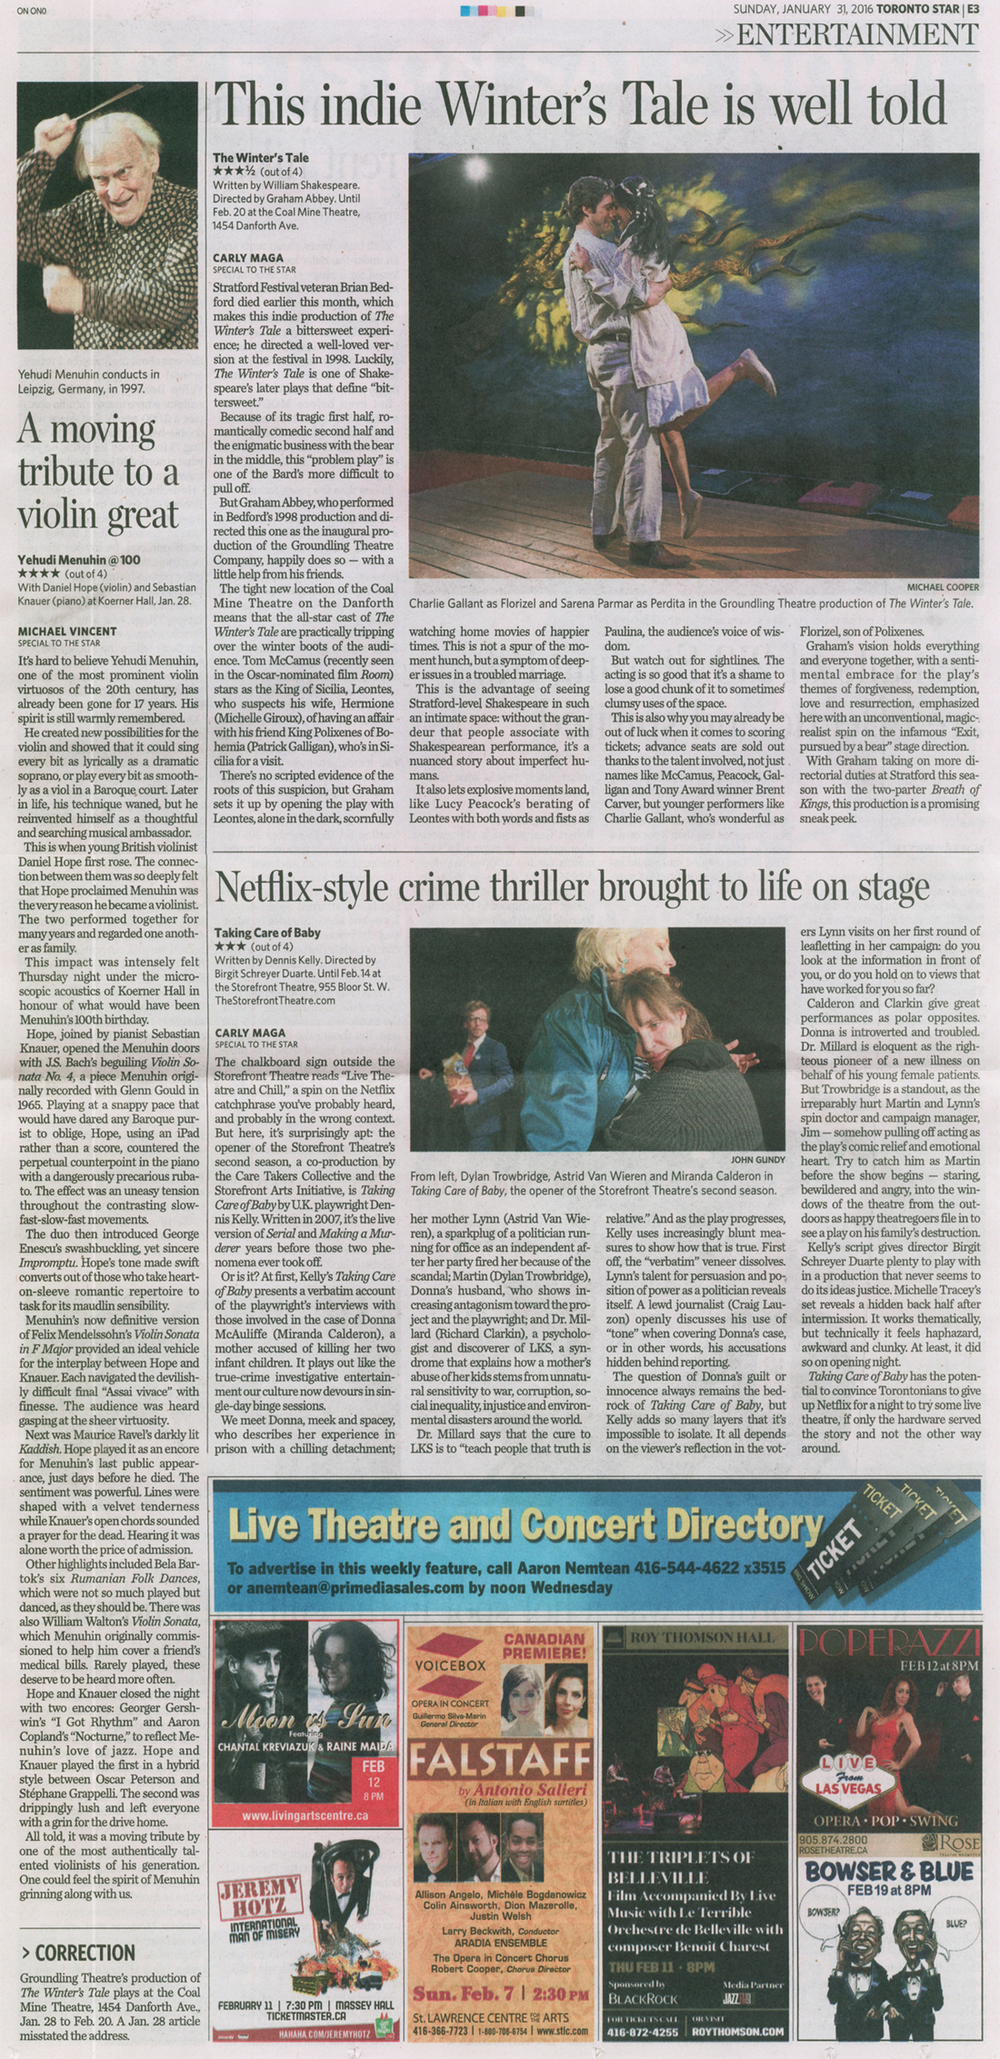 16.01.31 - Toronto Star - THE WINTER'S TALE.jpg